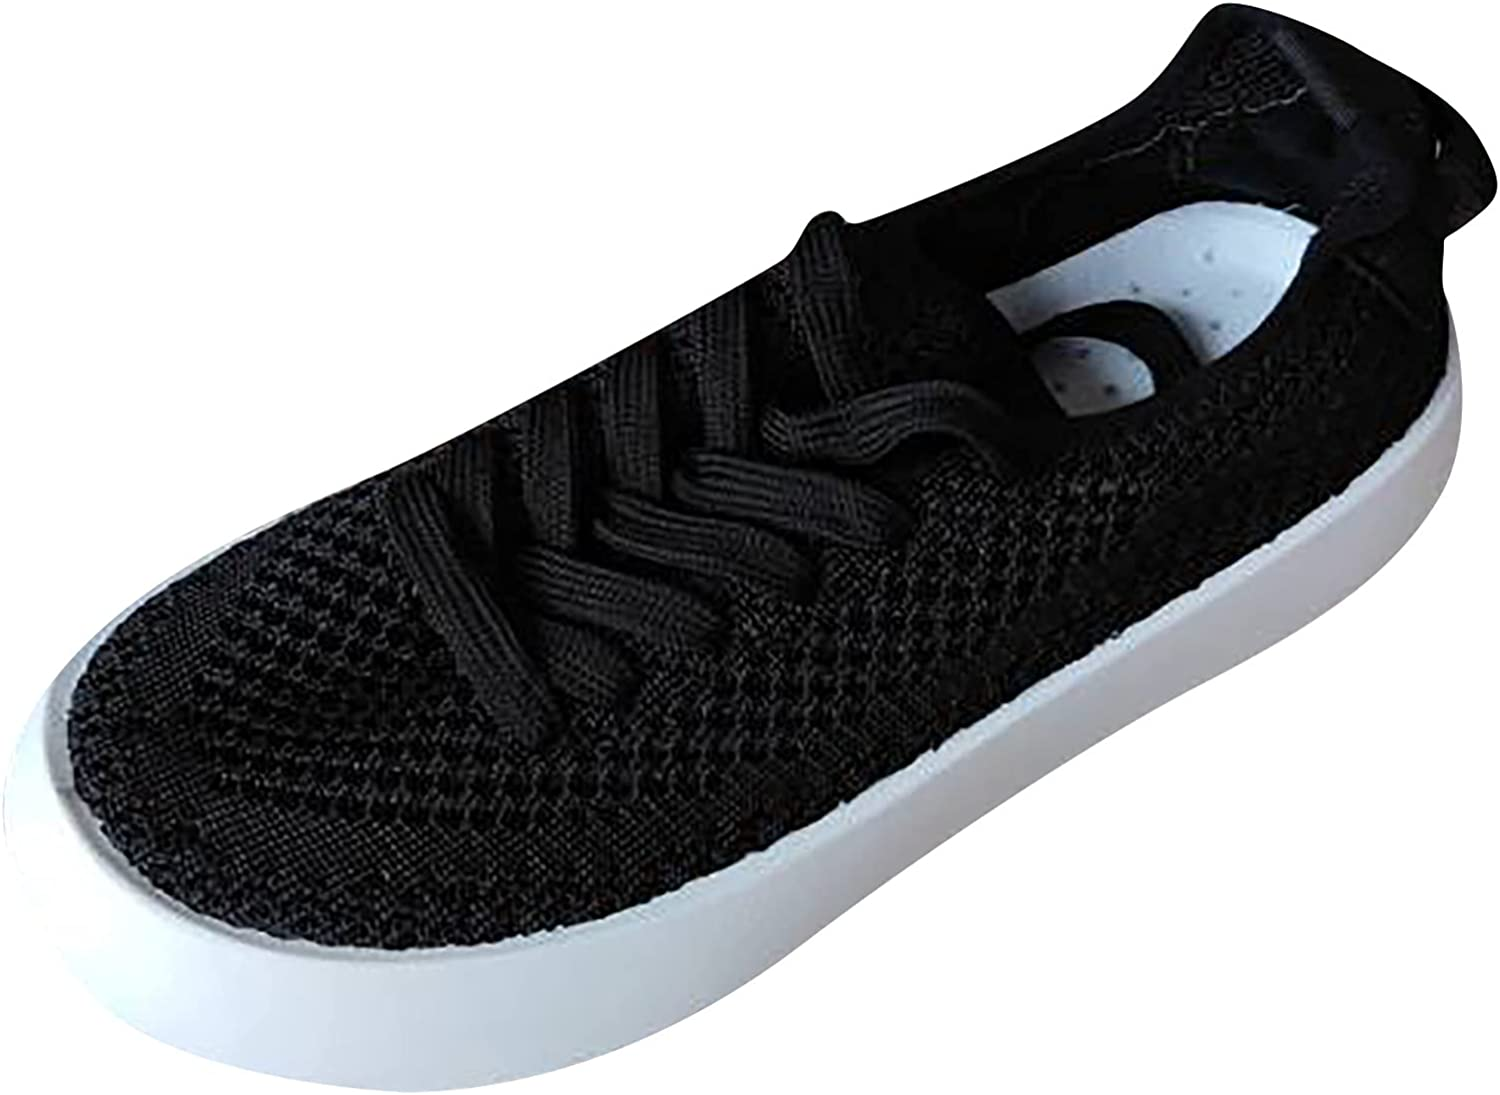 oiangi Women's Walking Shoes Fashion Sneakers Solid Mesh Breathable Lace Up Round Toe Low-top Non Slip Lady Girls Sports Shoes Platform Loafers